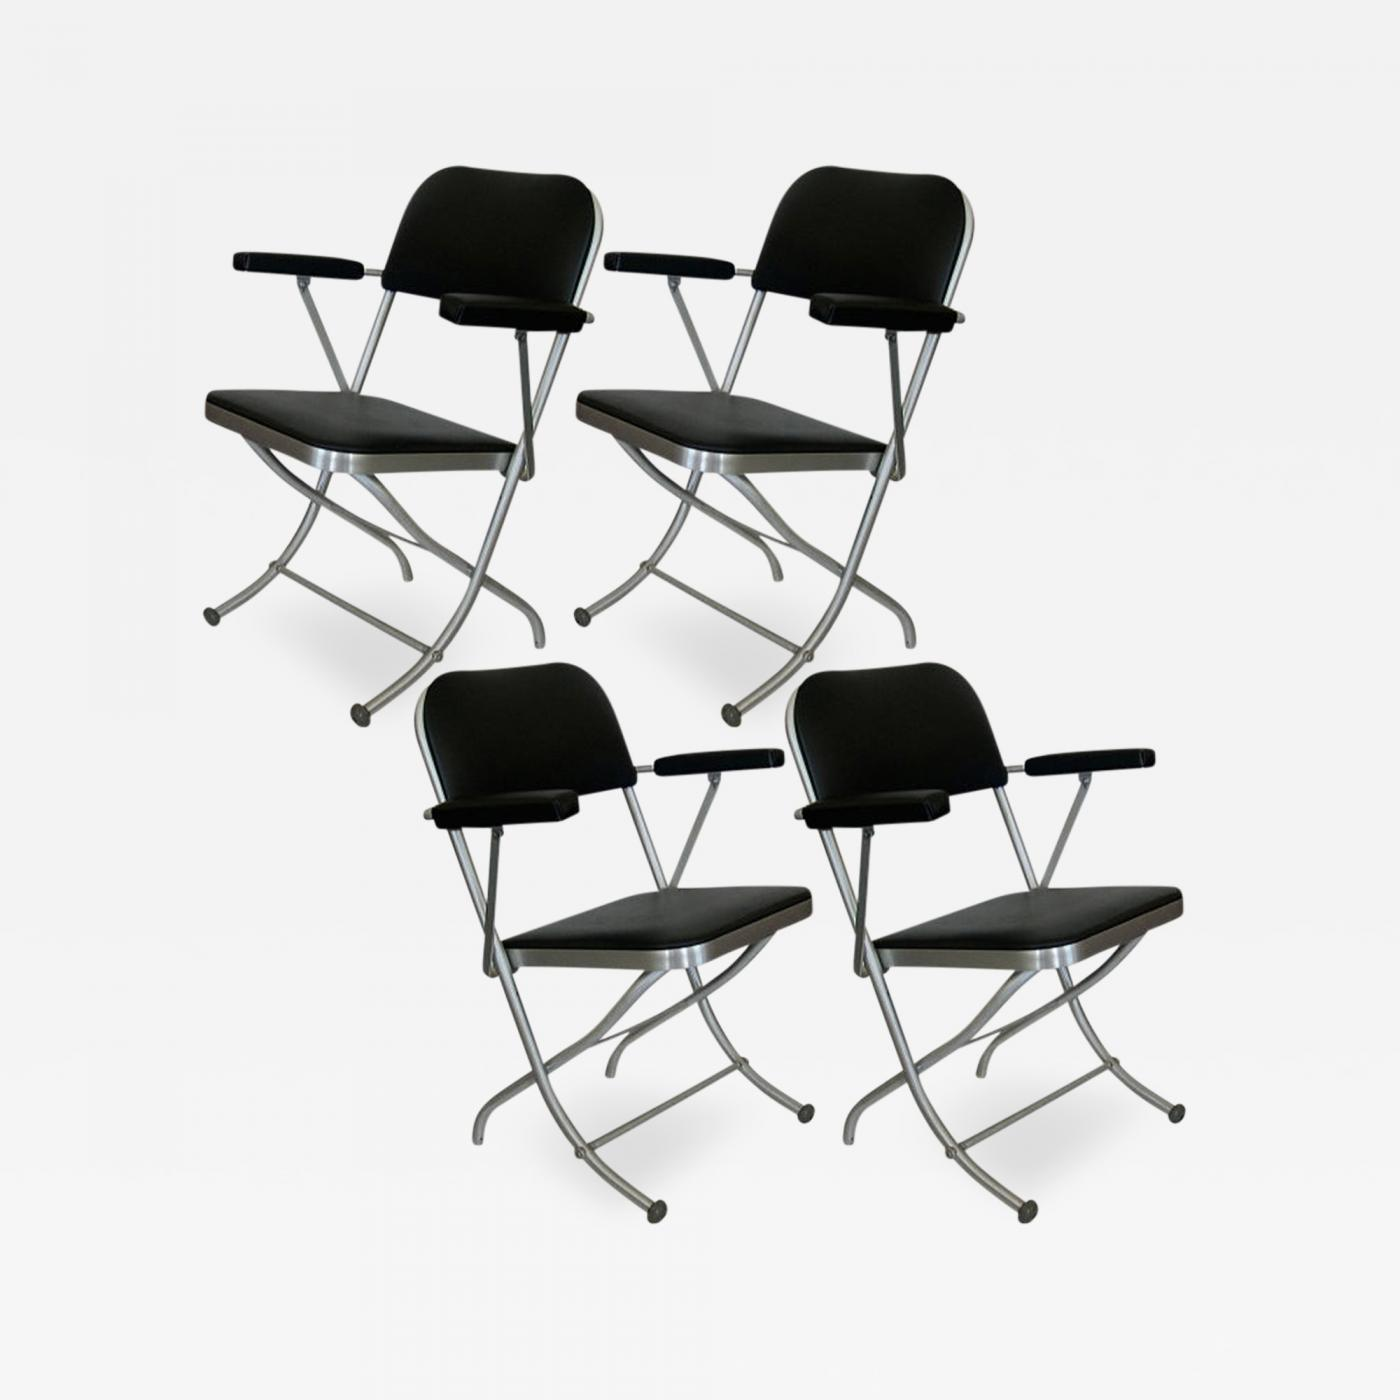 warren mcarthur set of ten warren mcarthur folding chairs Sky Scrapers 1920 set of ten warren mcarthur folding chairs